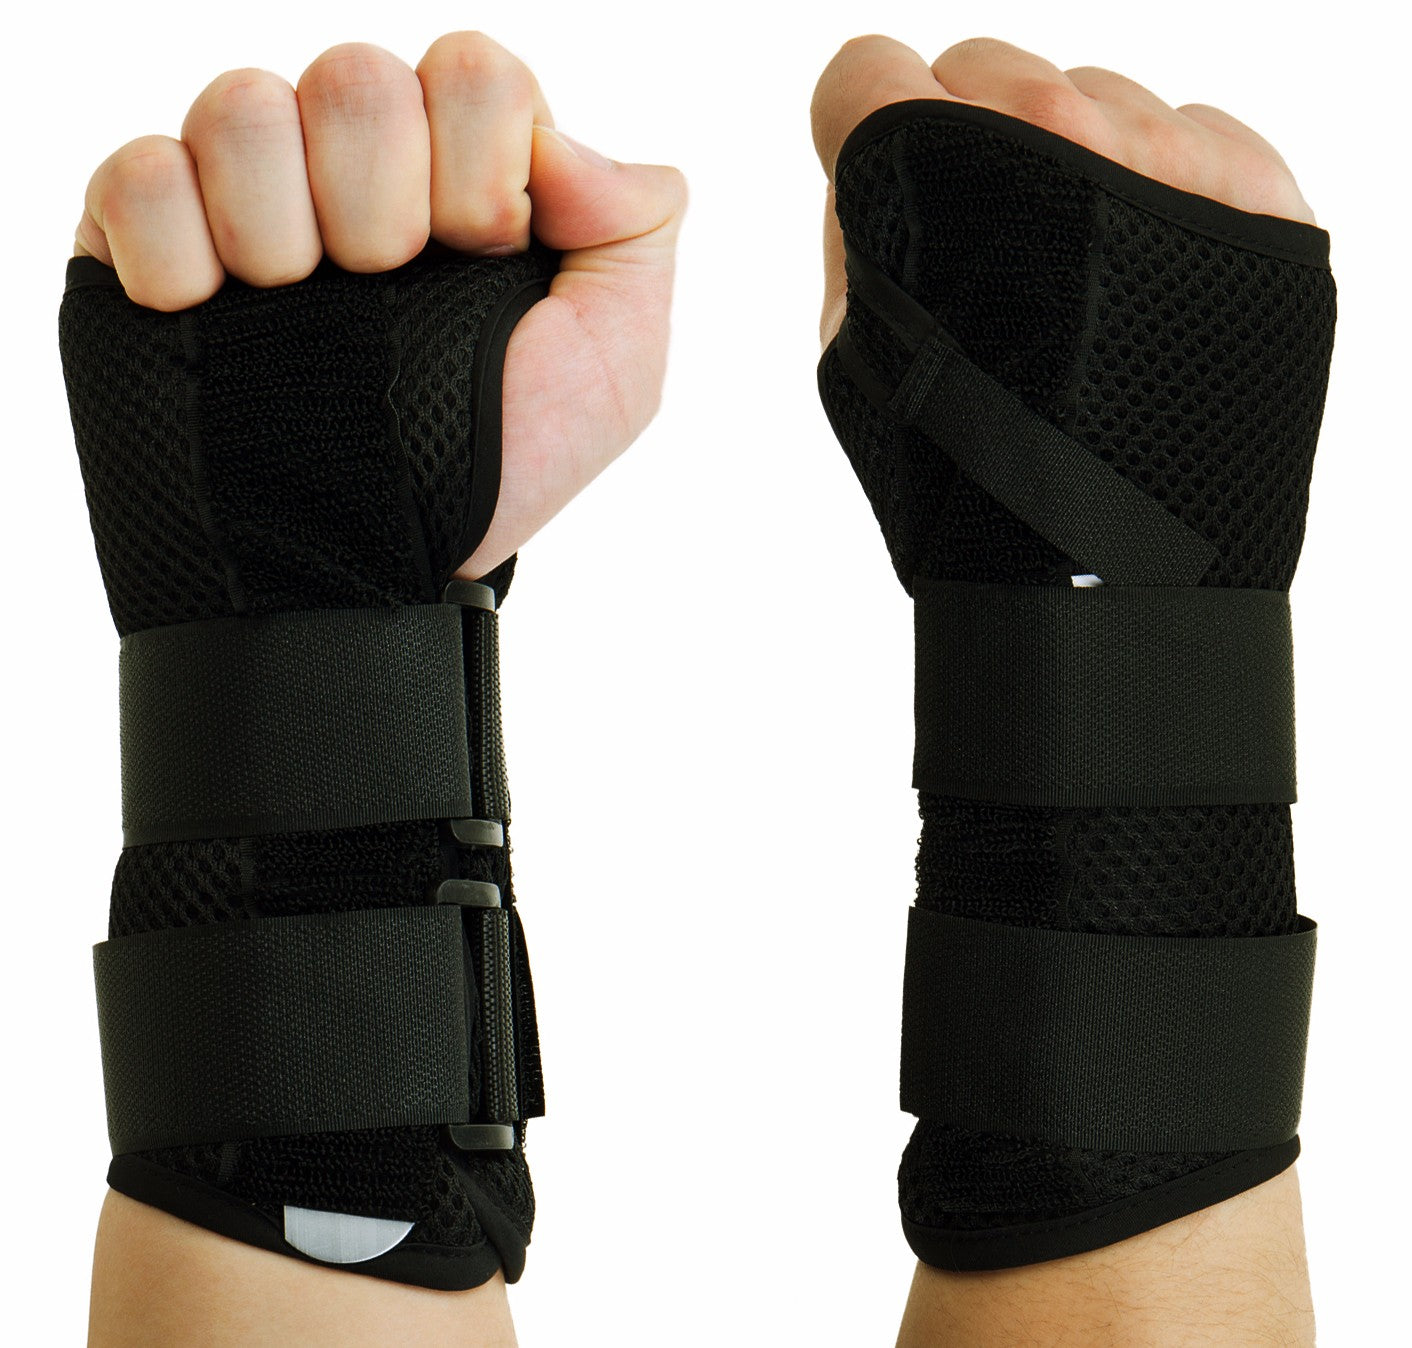 Wrist Support Braces Hand Wraps